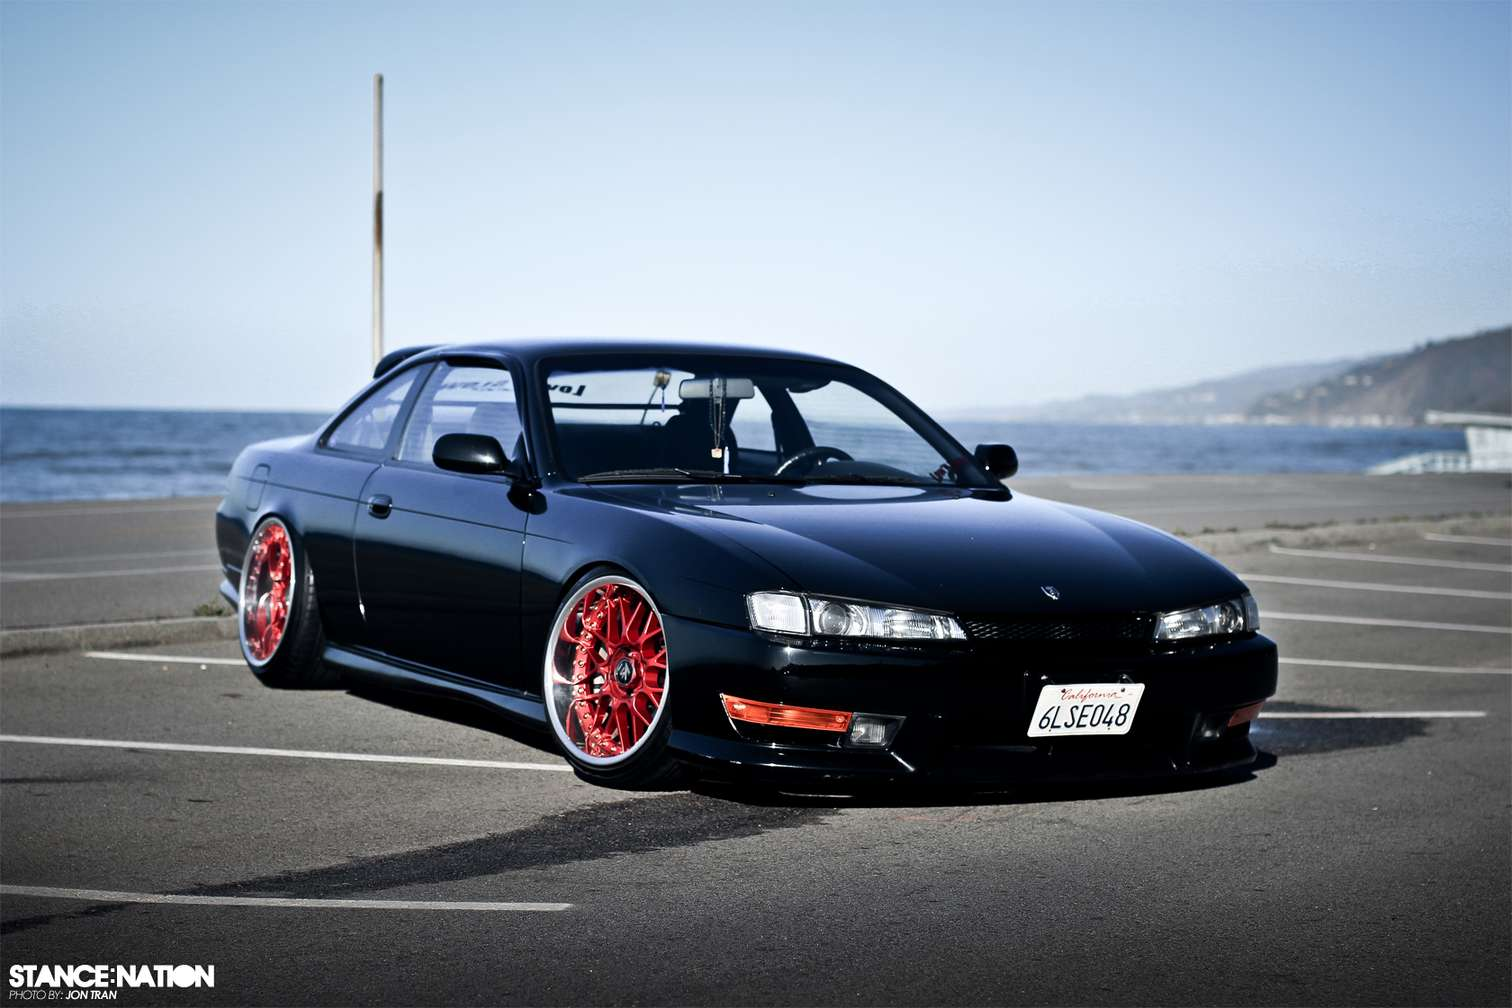 Nissan S14 #9800749